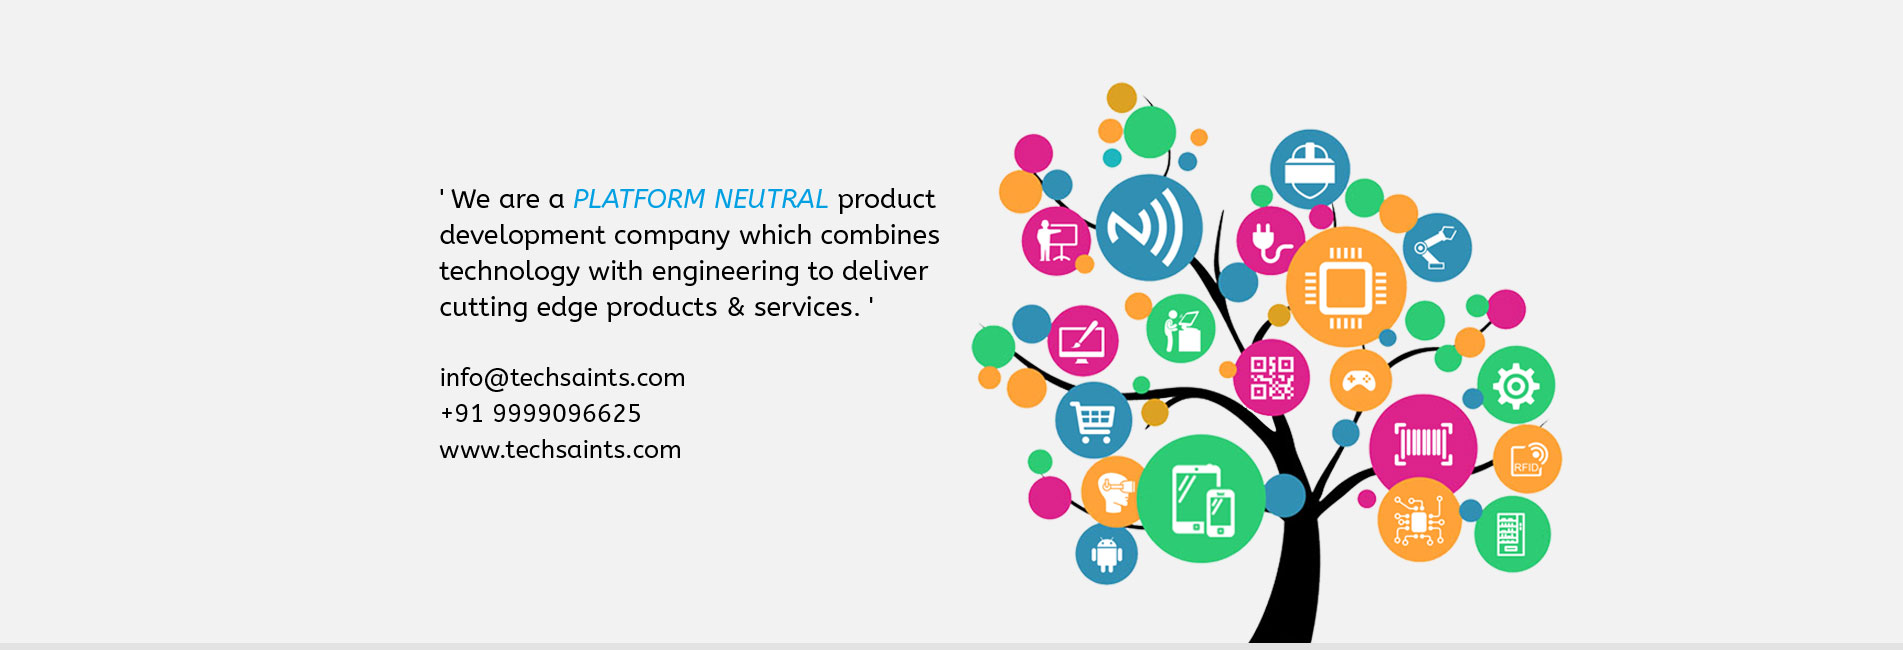 We are a platform neUtral product development company which combines technology with engineering  to deliver cutting edge products & services.